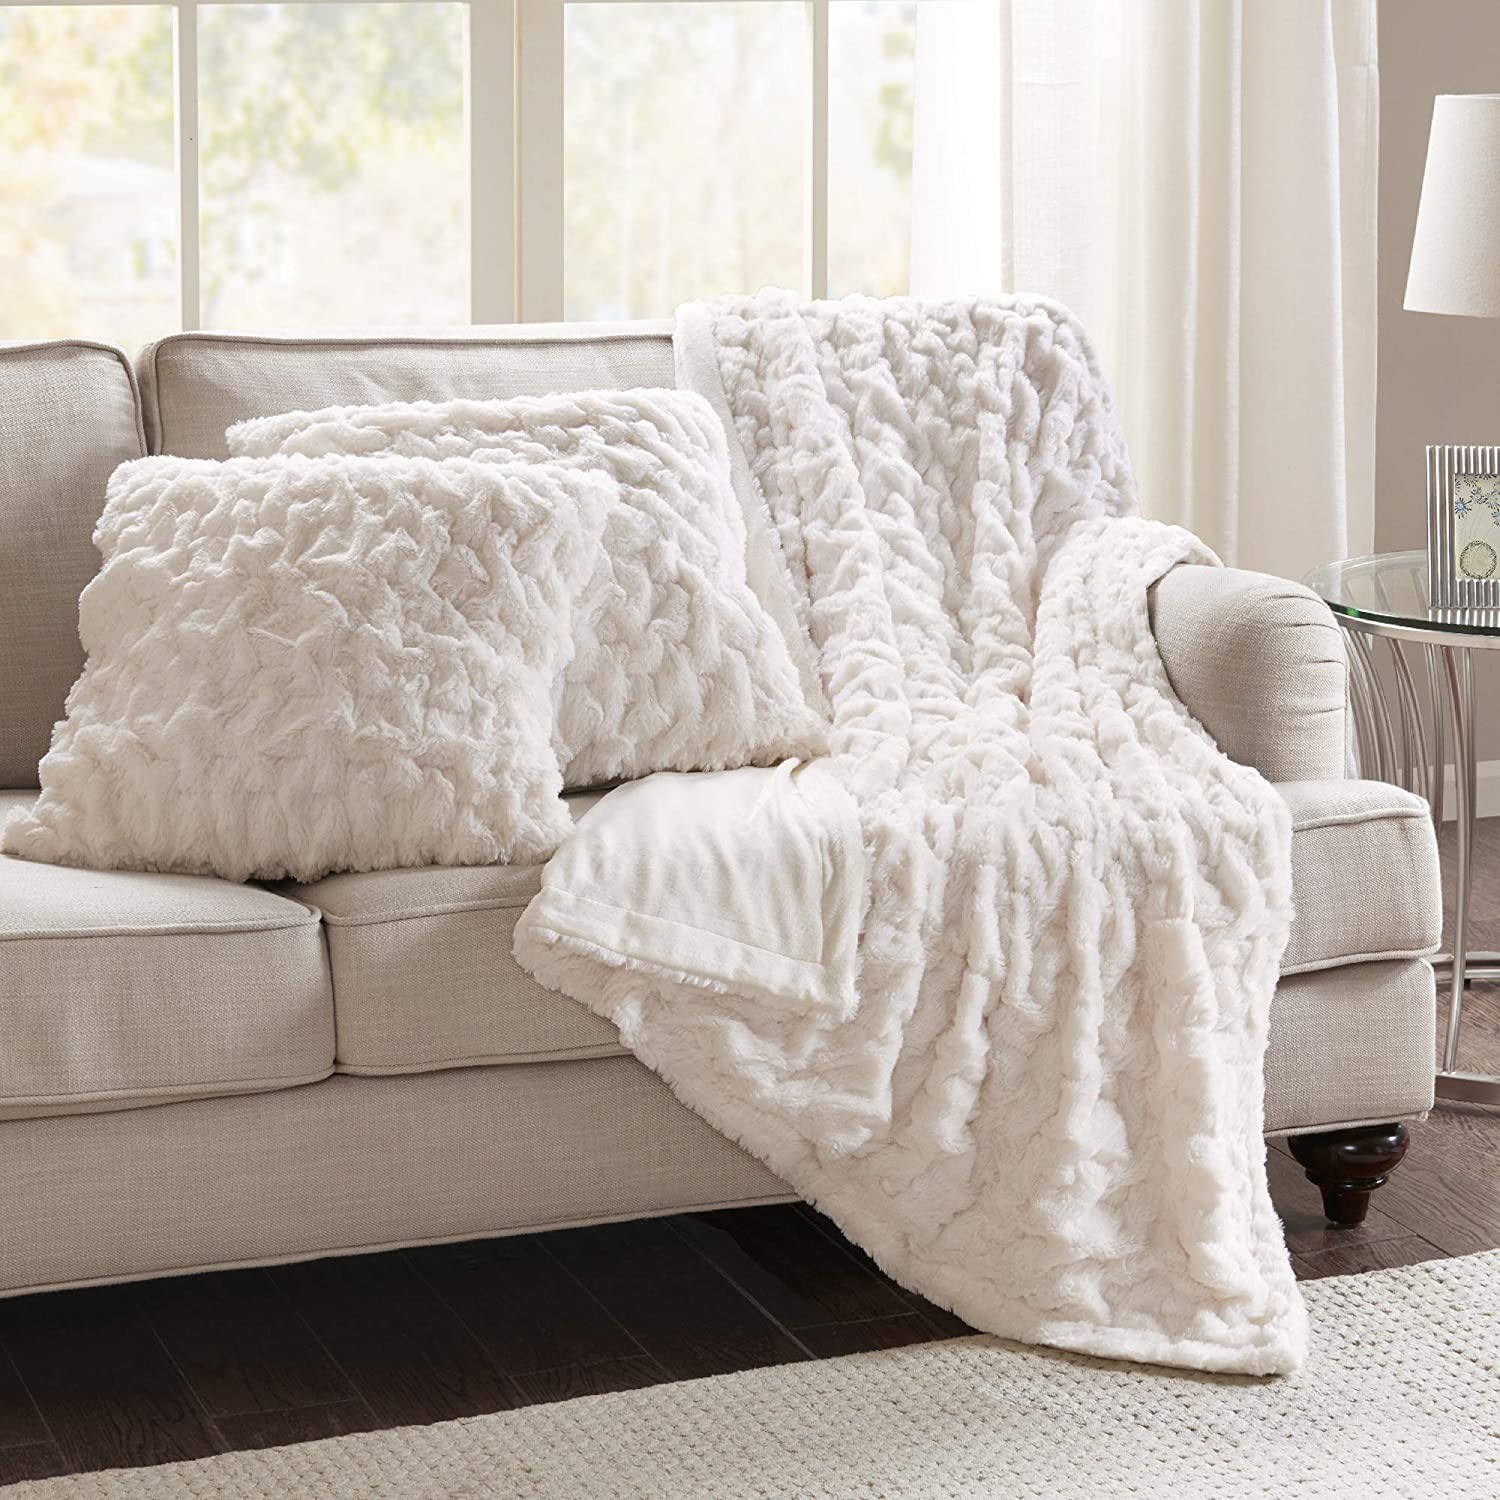 Pillow And Throw Set.Comfort Spaces Ruched Faux Fur Plush 3 Piece Throw Blanket Set Ultra Soft Fluffy With 2 Square Pillow Covers 50 X60 Ivory